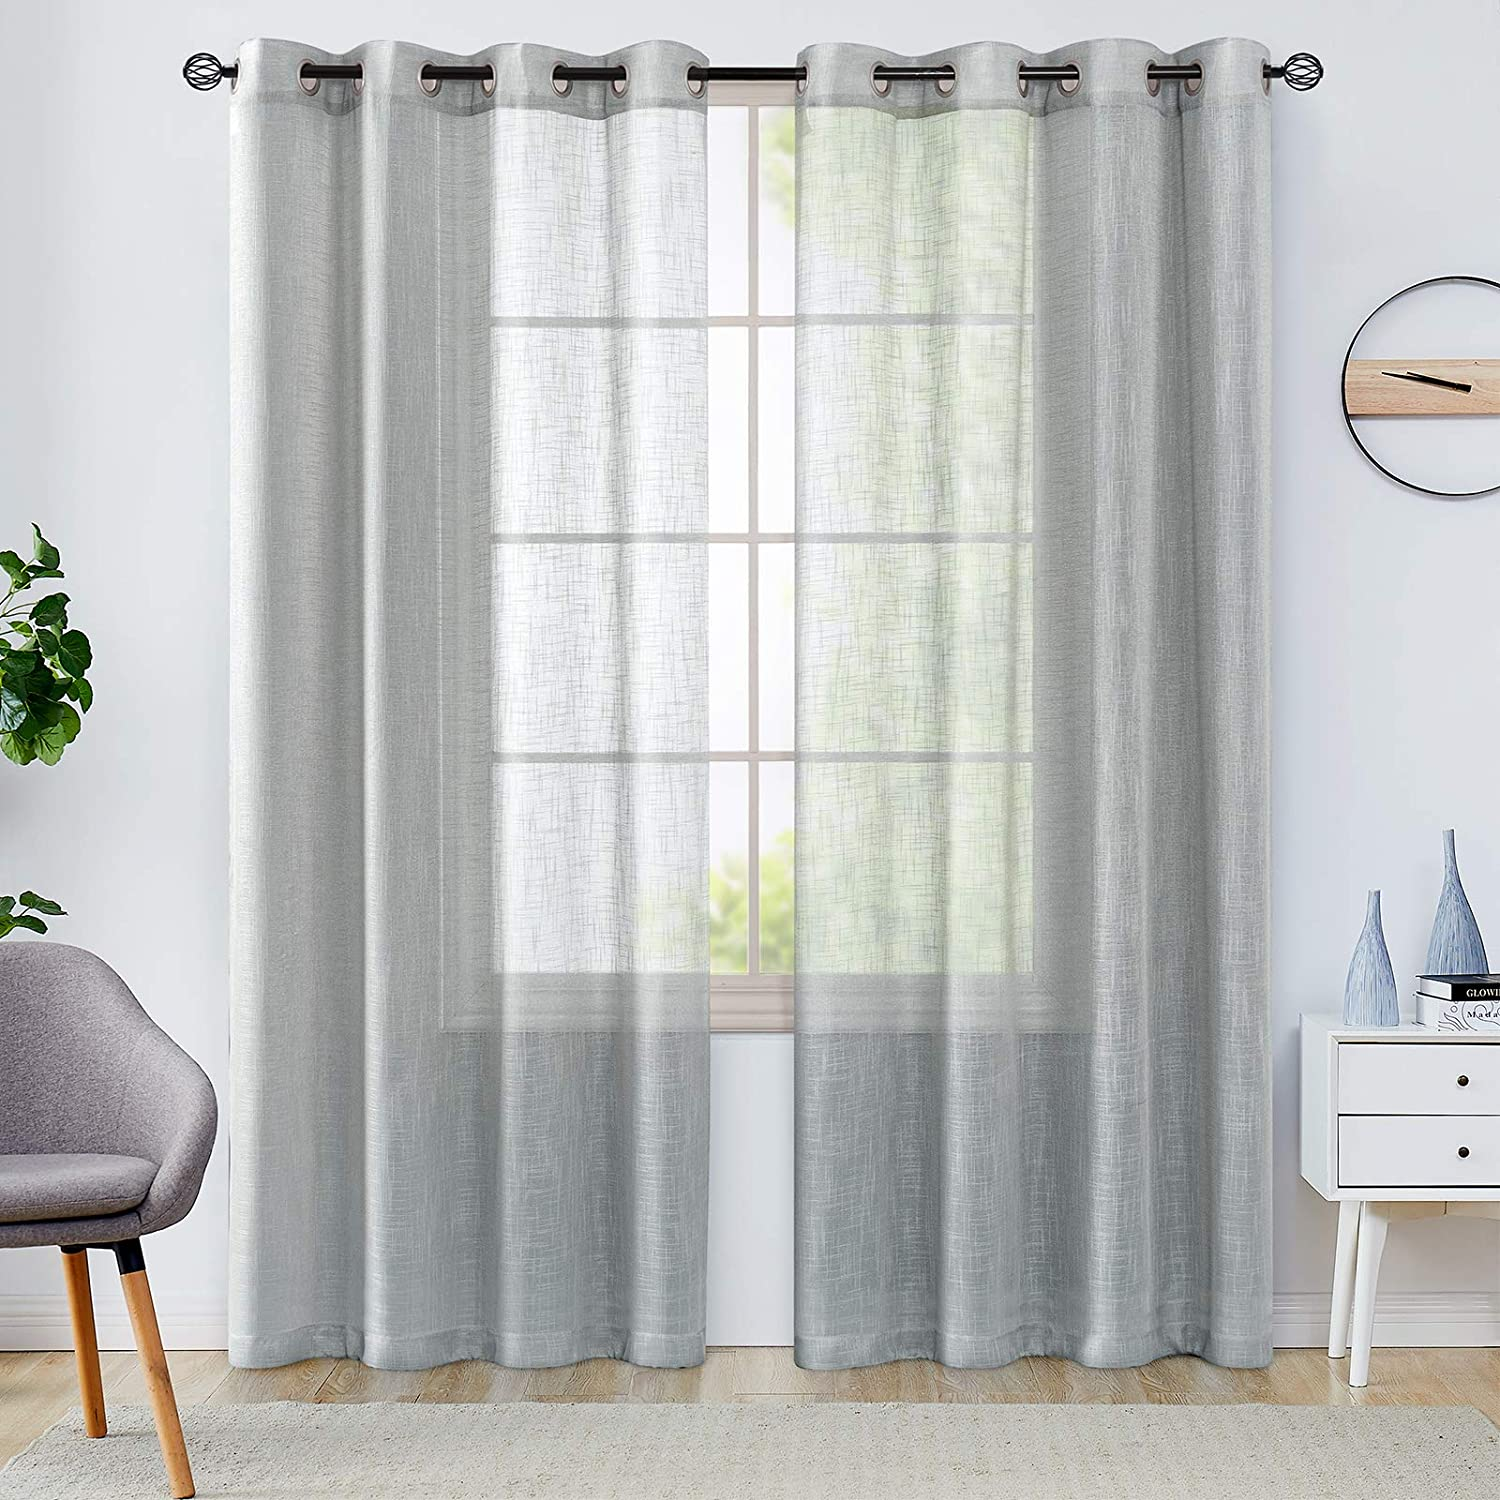 Lazzzy Grey Bombing Large special price !! free shipping Sheer Curtains 108 Inches Open Text Extra Weave Long